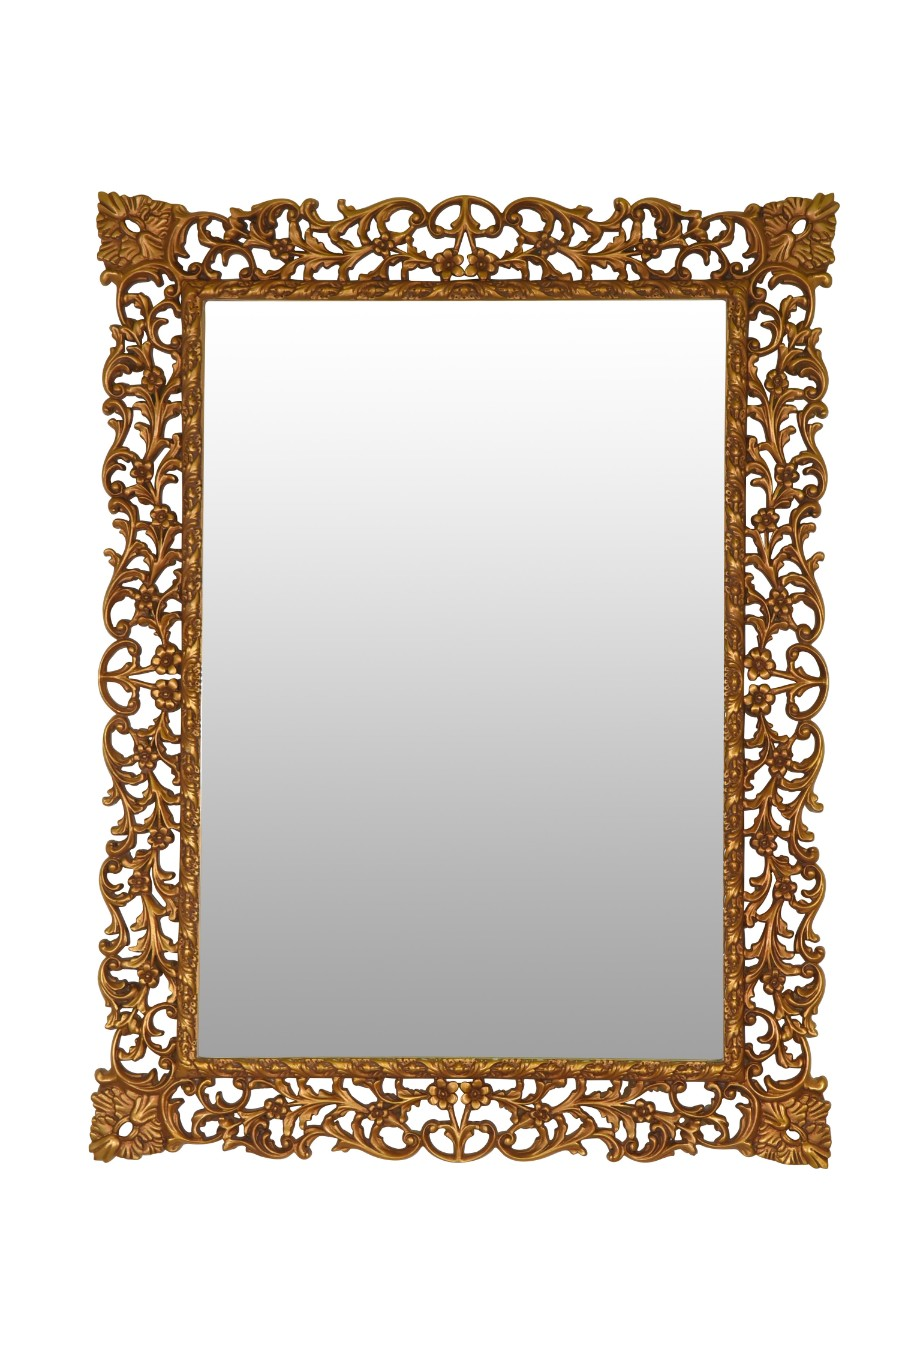 Renoncule, French Style,Gold Leaf, Mirror